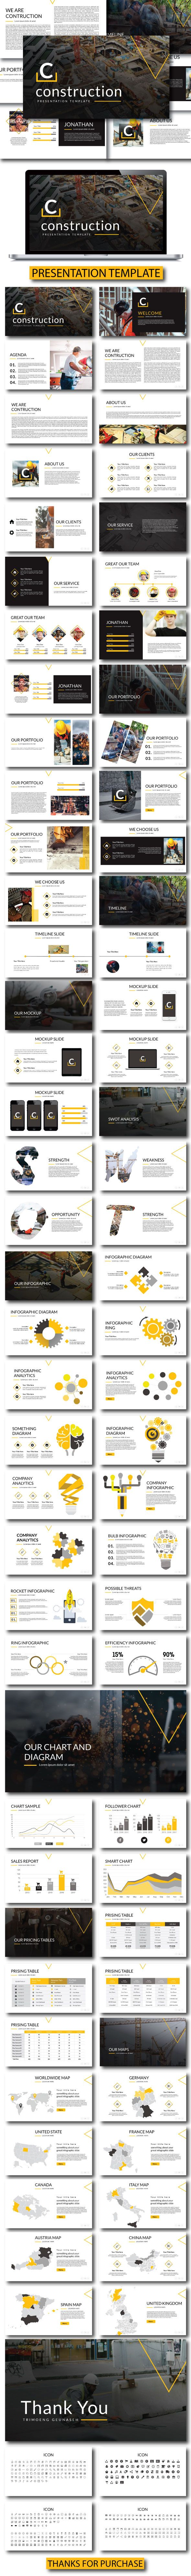 Construction - Creative Keynote Template - Keynote Templates Presentation Templates